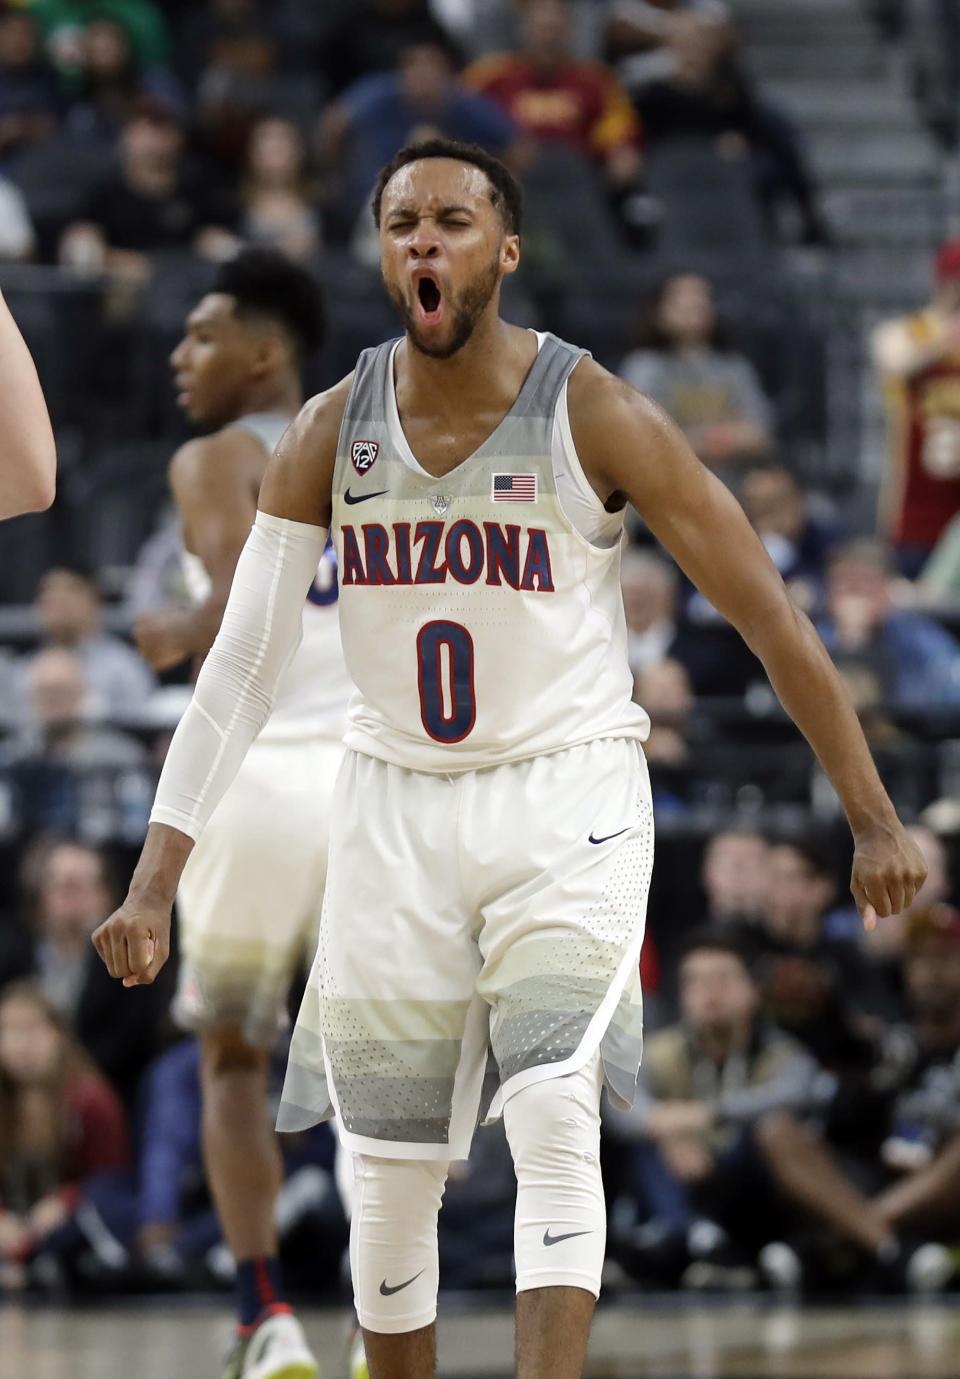 Arizona's Parker Jackson-Cartwright reacts after a basket during the second half of against Southern California in an NCAA college basketball game for the Pac-12 men's tournament championship Saturday, March 10, 2018, in Las Vegas. Arizona won 75-61. (AP Photo/Isaac Brekken)